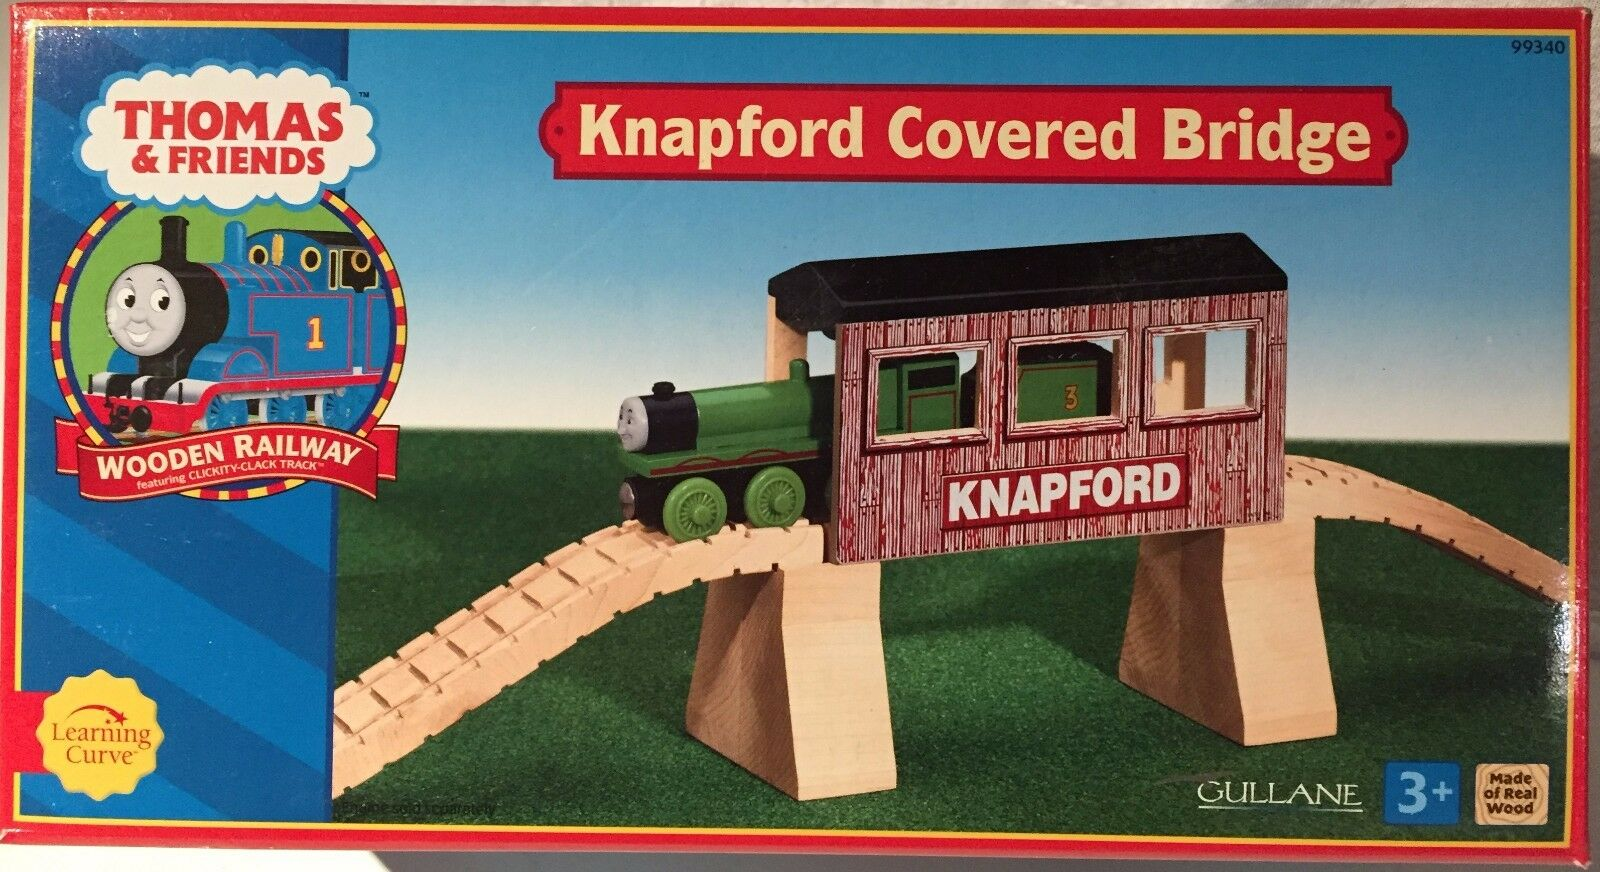 Thomas Thomas Thomas & Friends Knapford Covered Bridge, new, never opened 99340 904e14